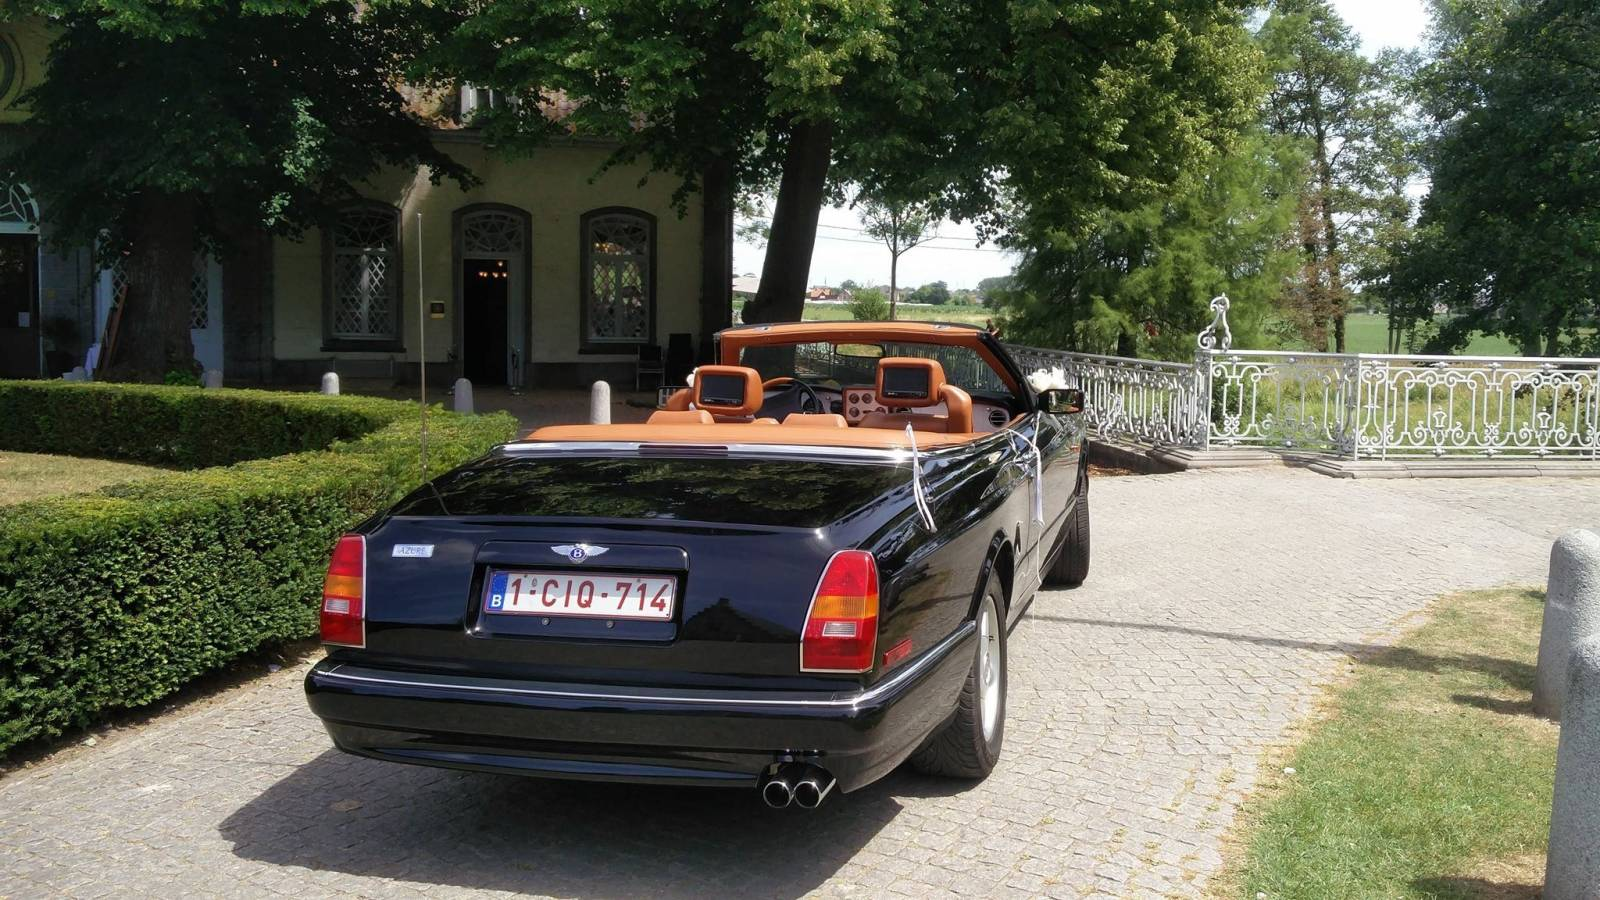 Van Noten Ceremonies - Trouwvervoer - Bentley Azure Cabrio - House of Weddings - 4